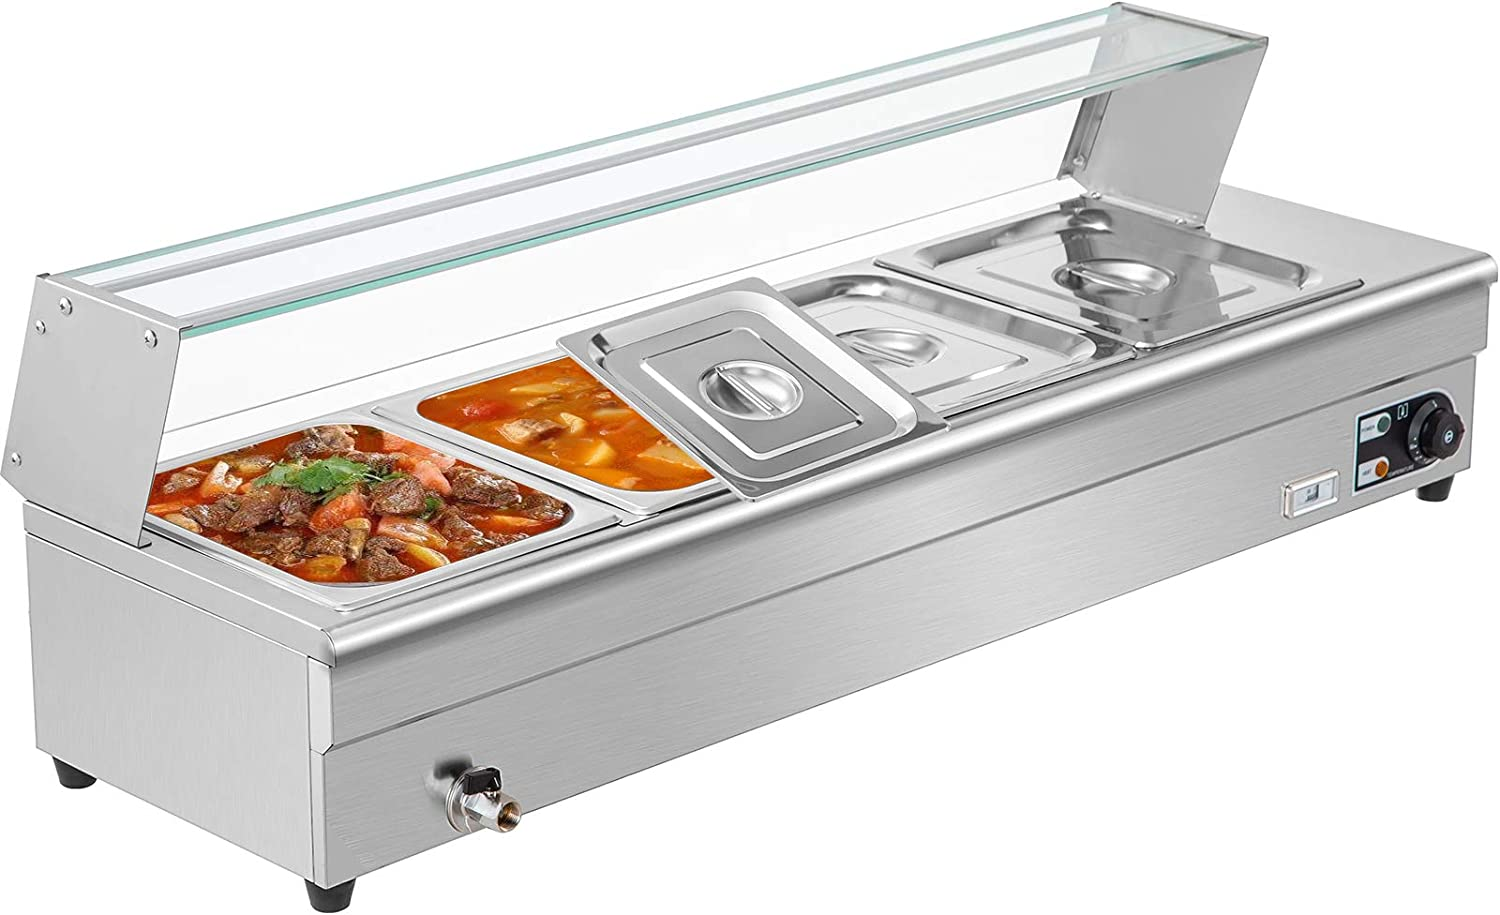 VEVOR 4-Pan Bain Marie Food Warmer 6-Inch Deep, 110V Food Grade Stainelss Steel Commercial Food Steam Table